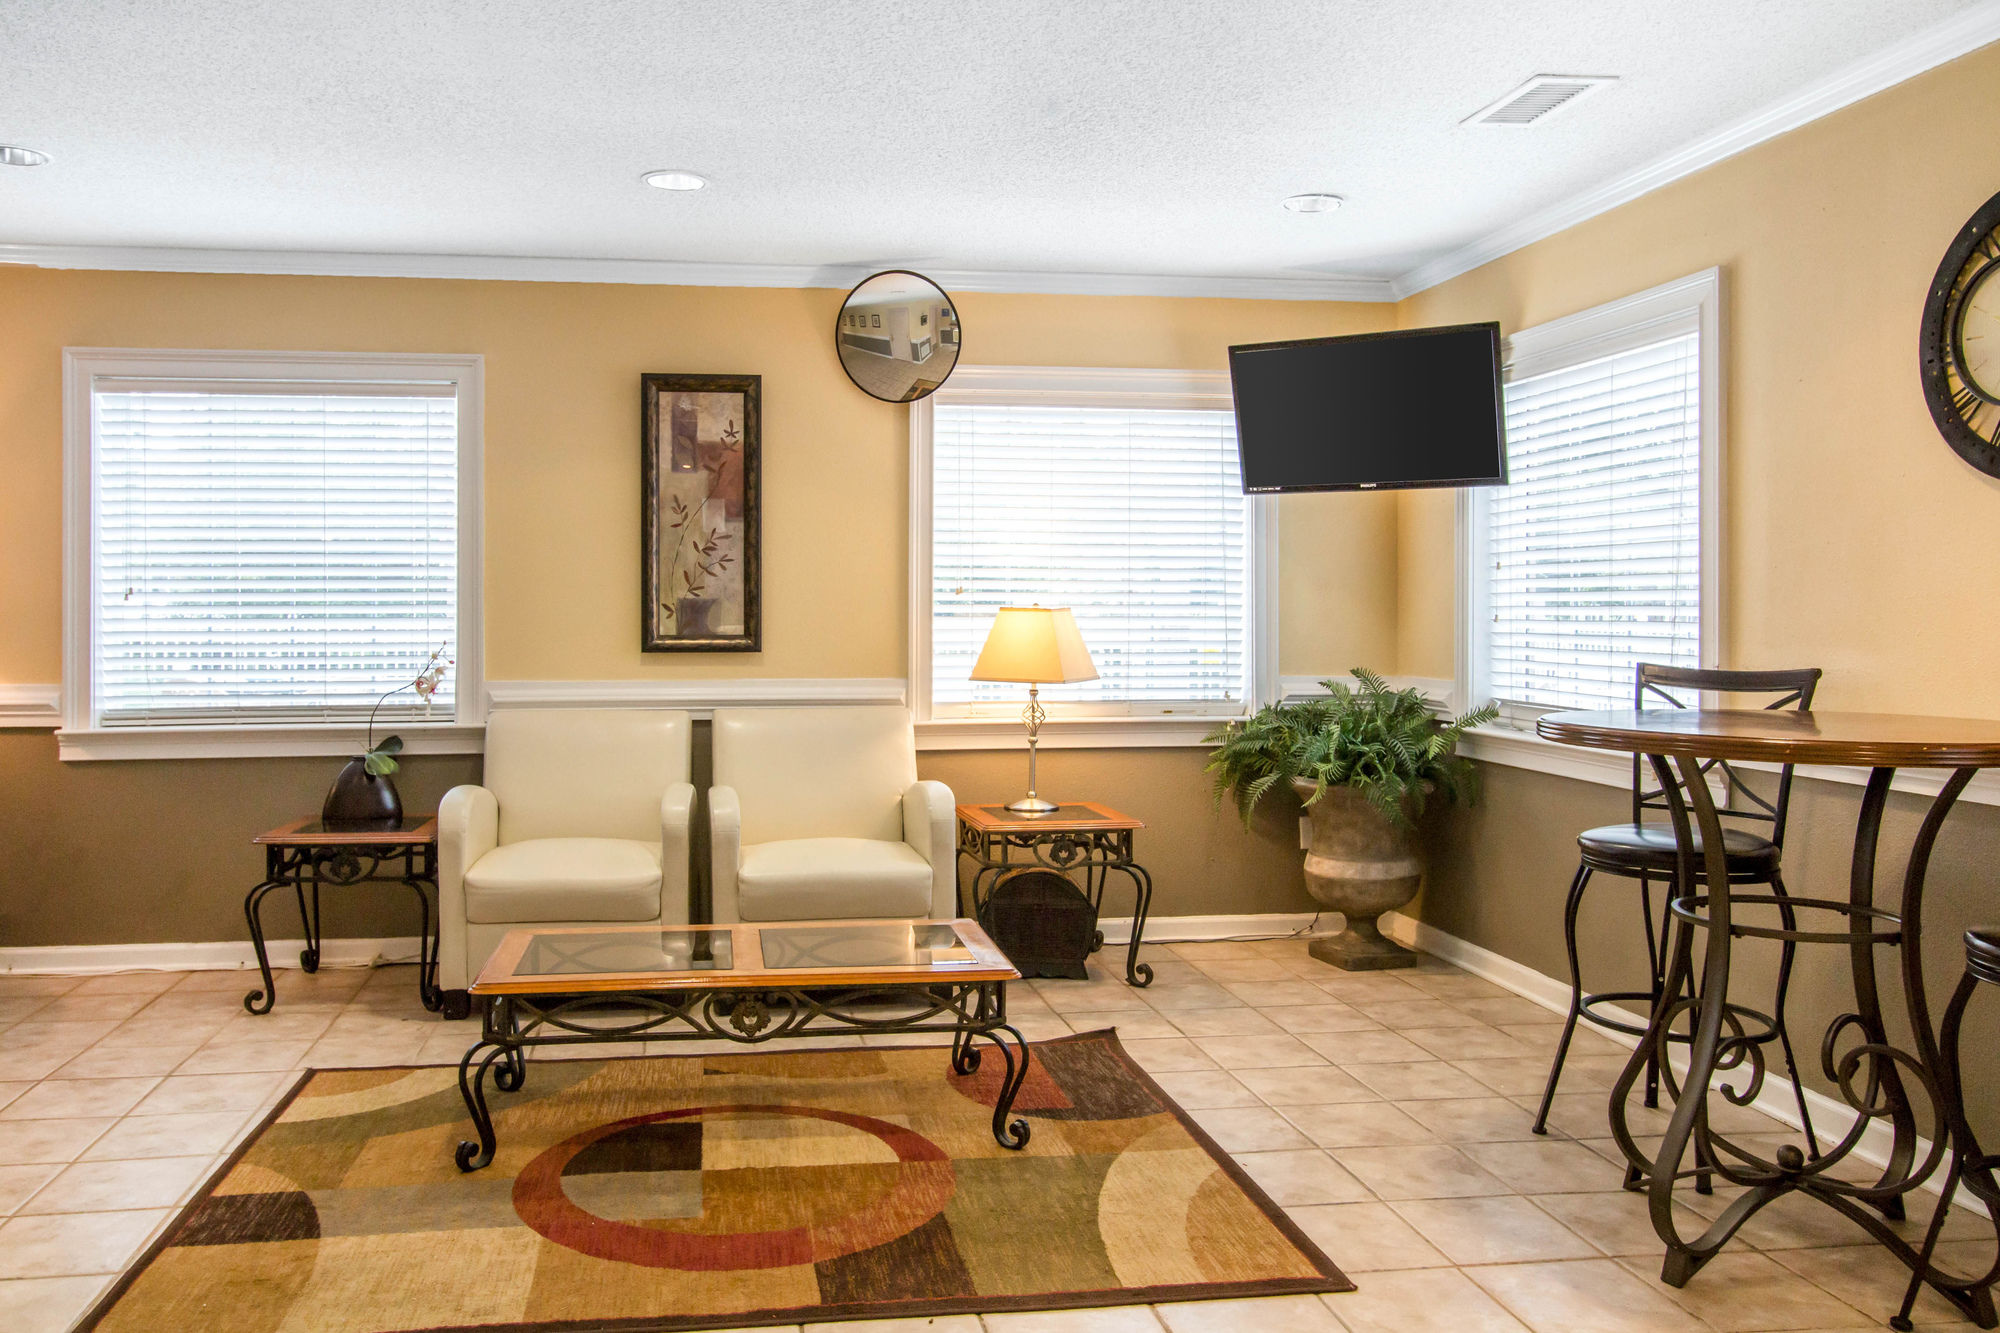 Suburban Extended Stay Hotel in Bluffton, SC